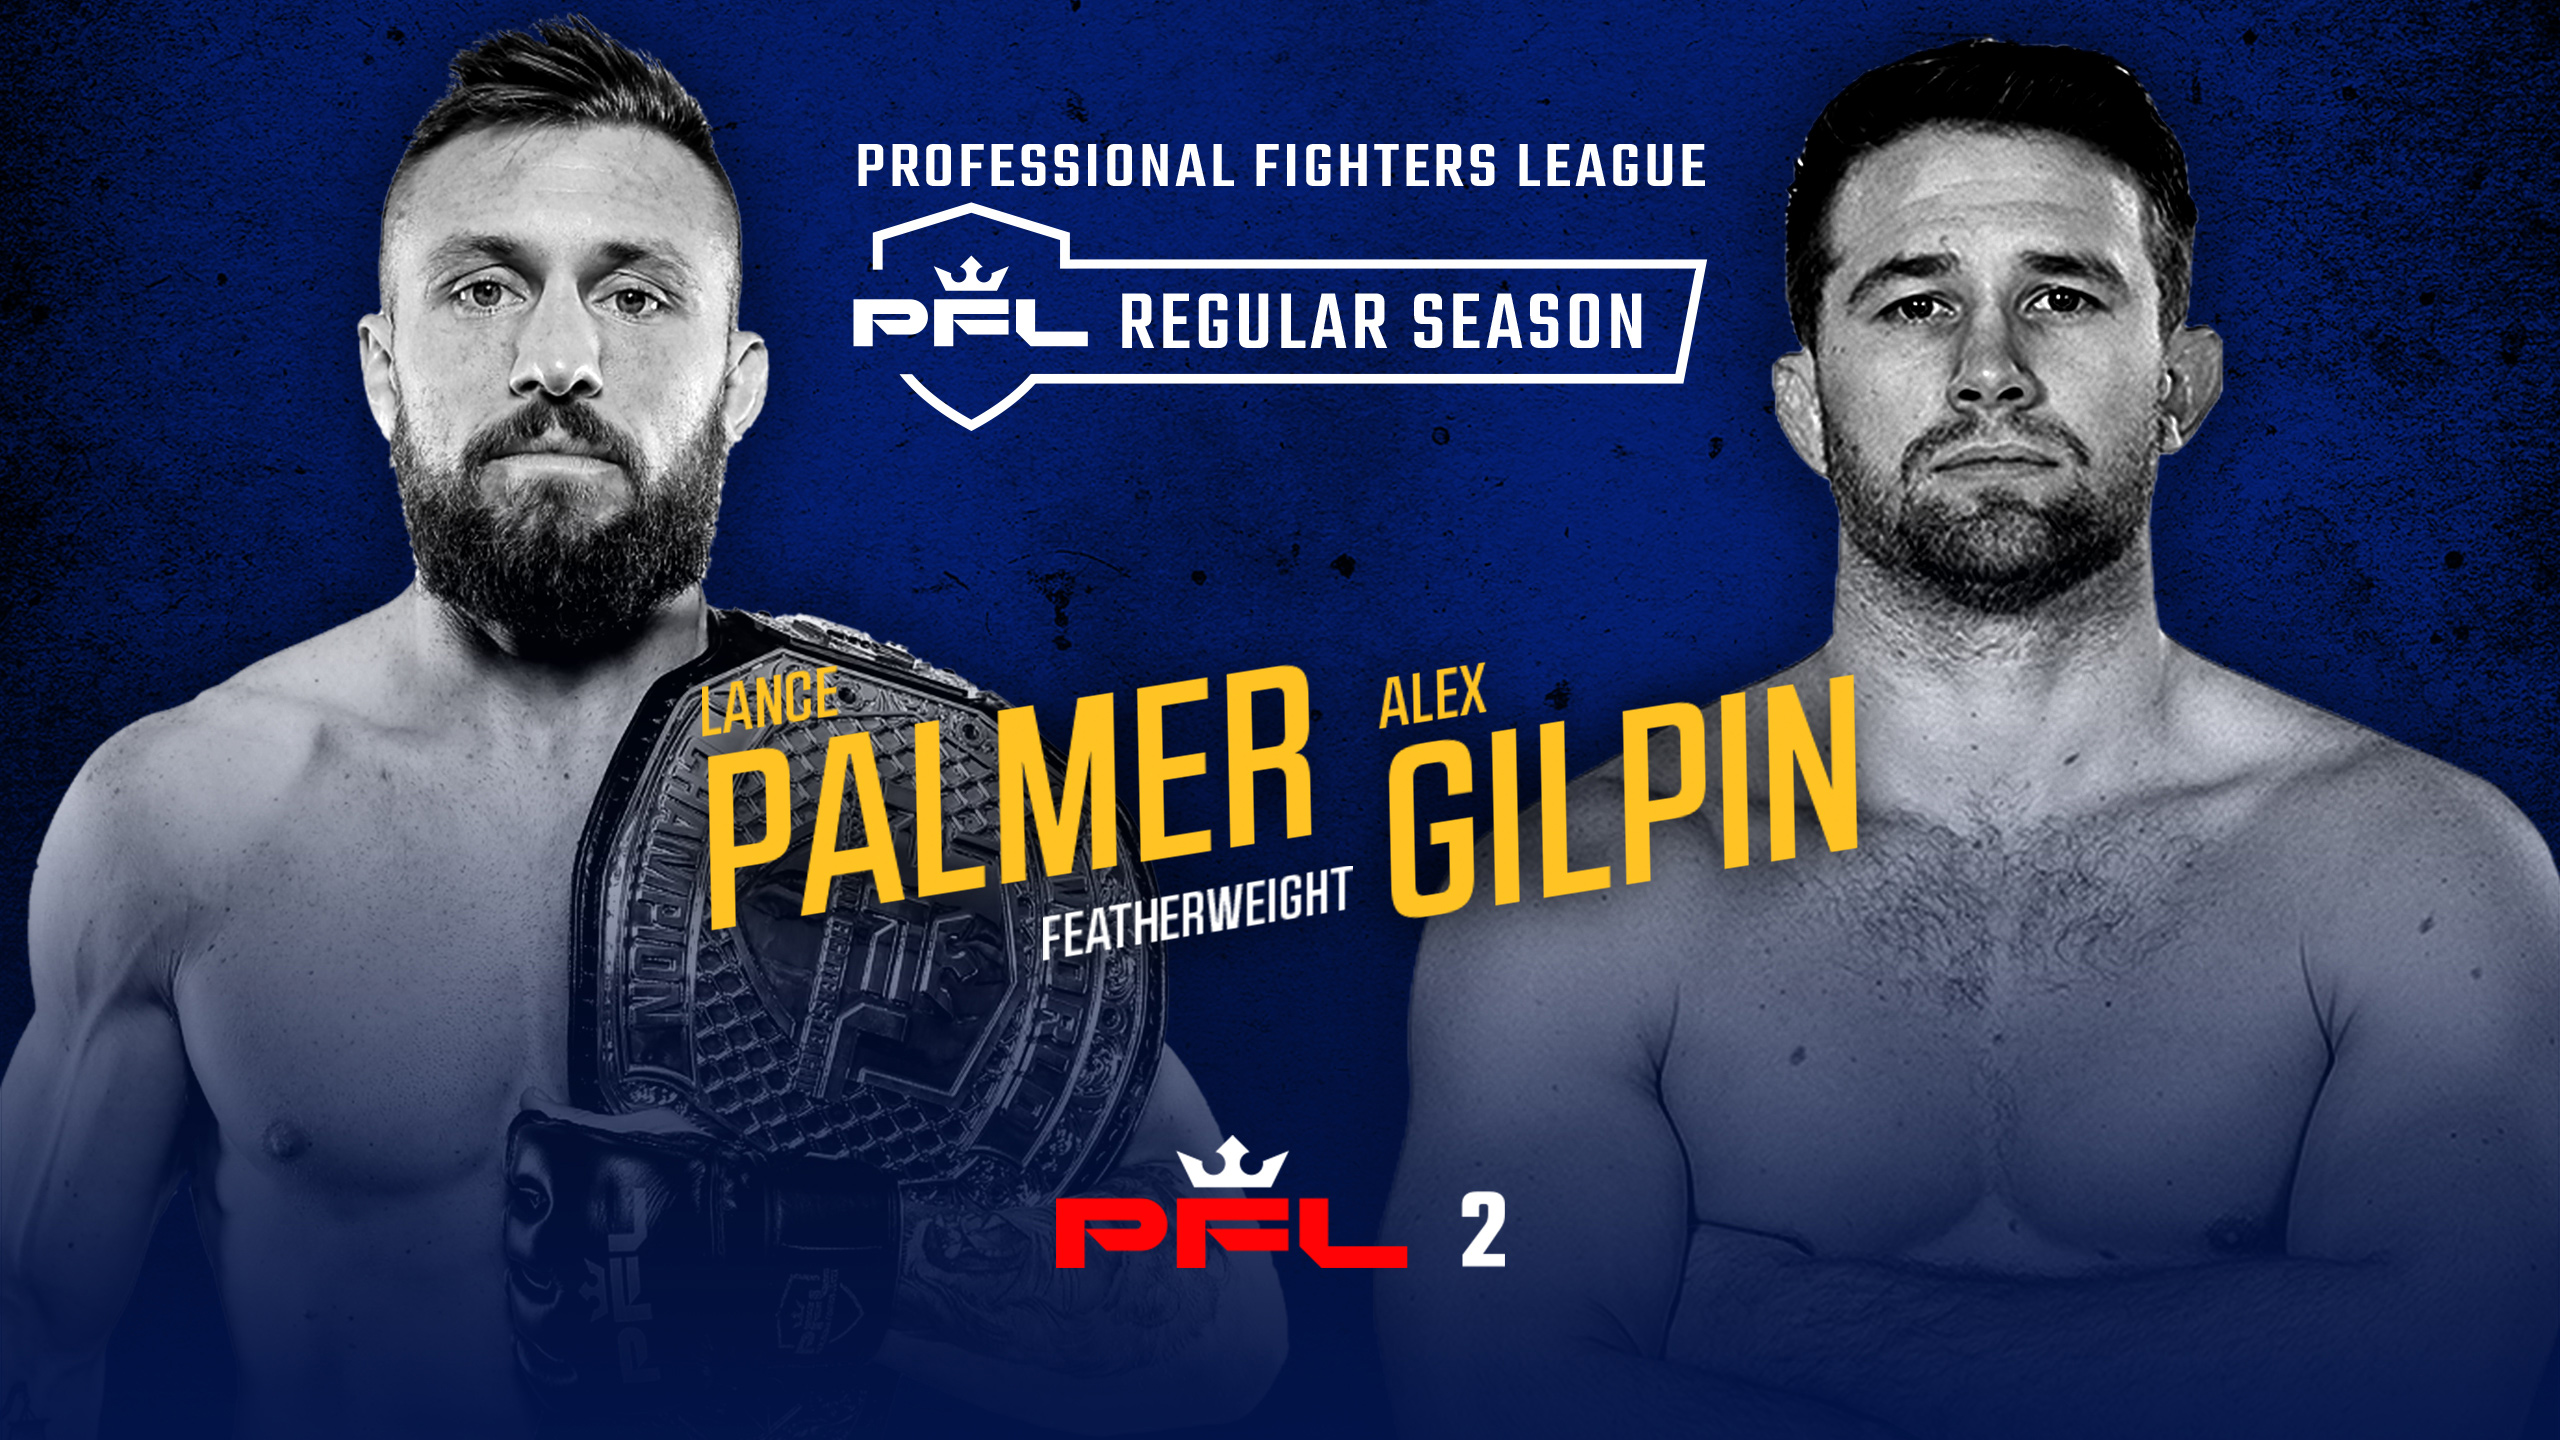 In Spanish - Professional Fighters League (PFL 2)